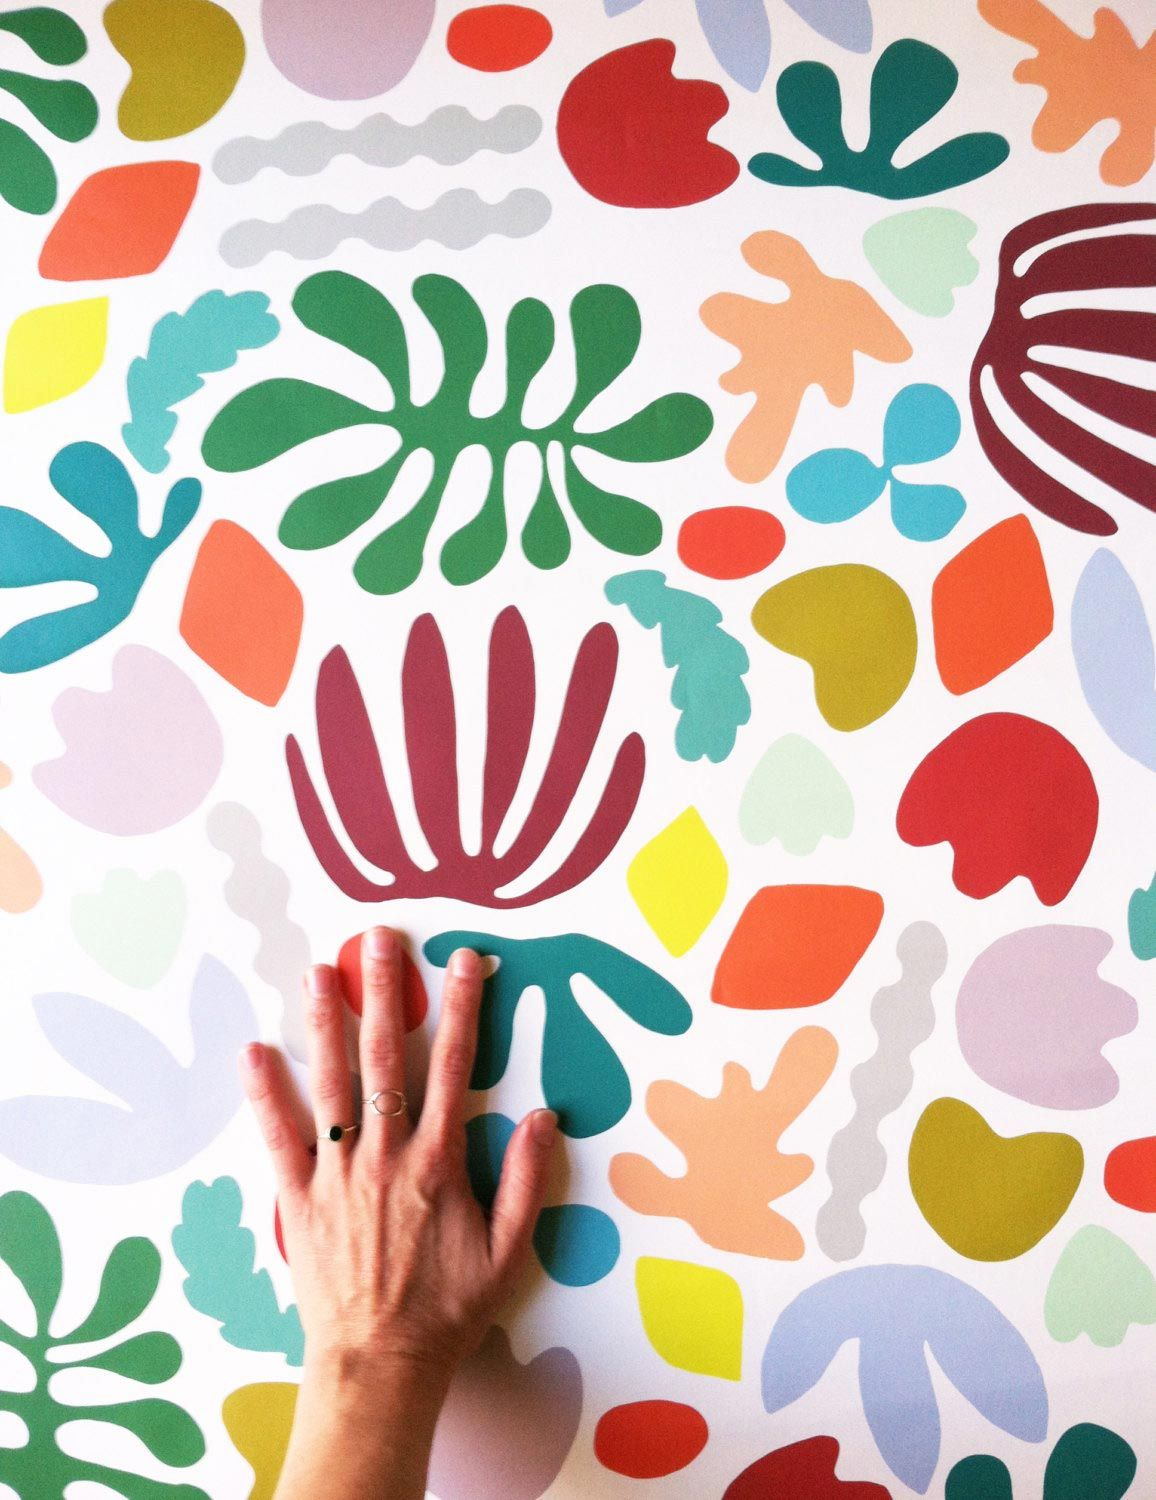 Papel Pintado Murales Cute Prints And Things For Kids Inspirational Patterns 絵